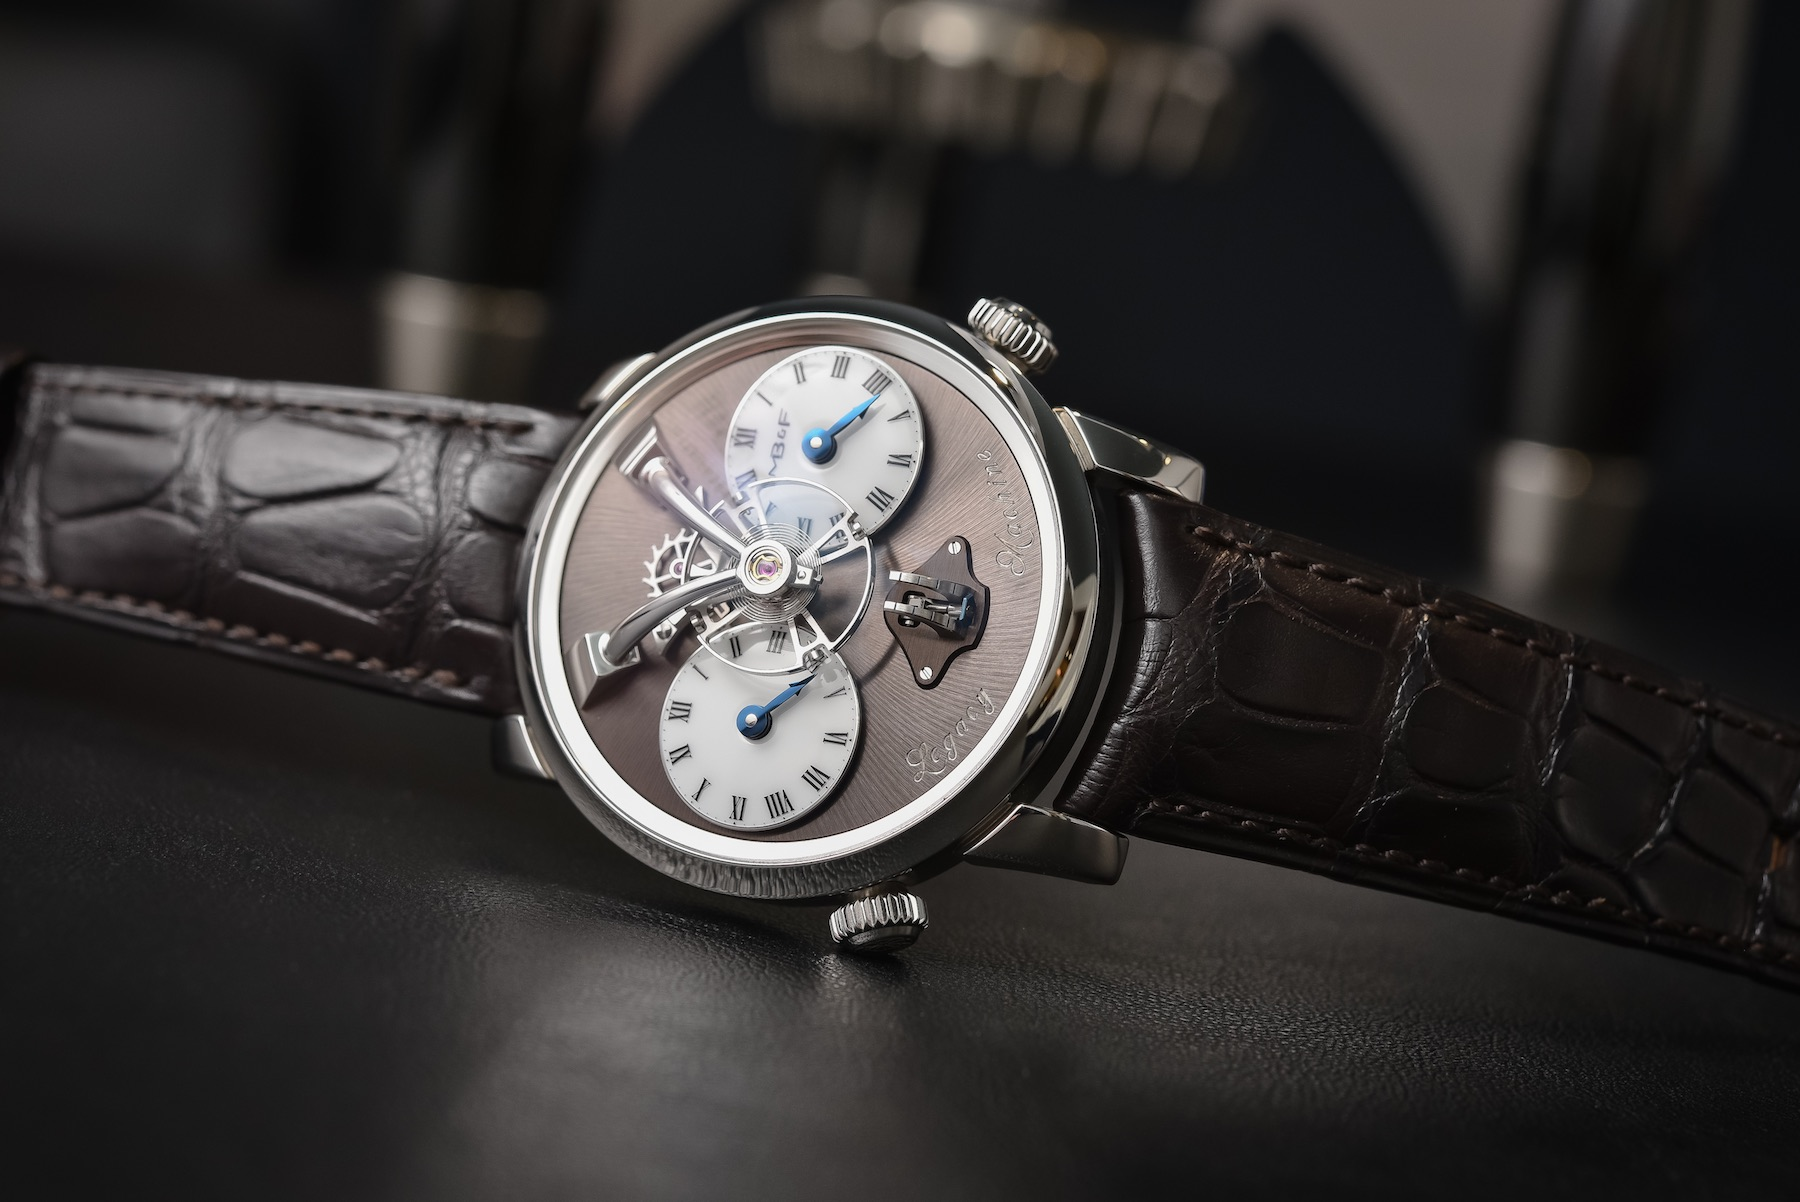 The LM1 Final Edition in Steel